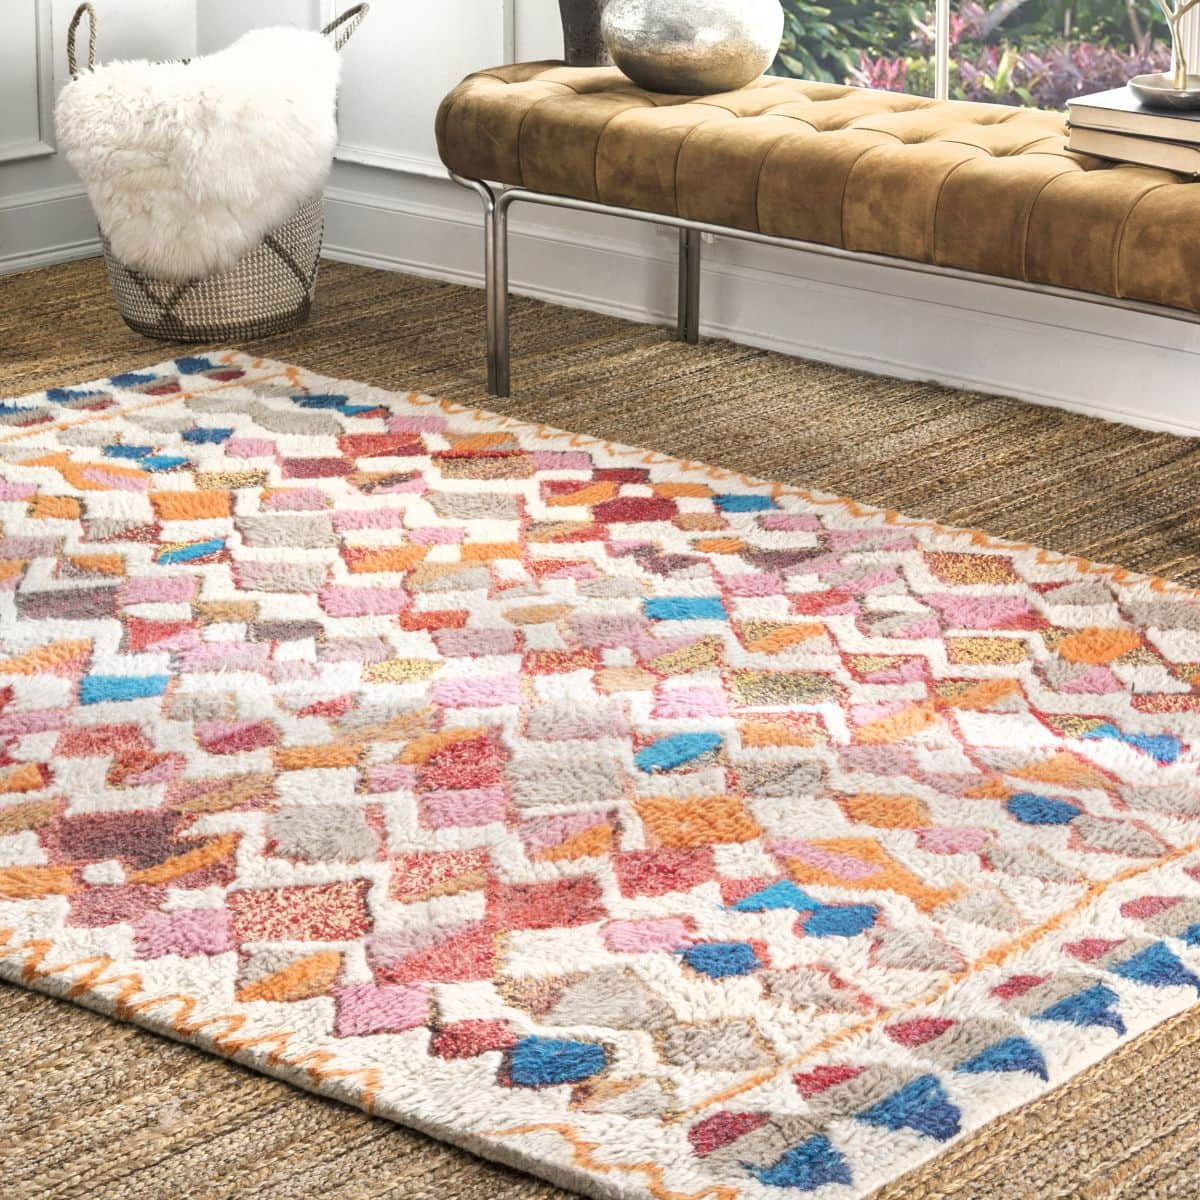 Get a Moroccan Feel With a Vibrant Moroccan Diamond Shag Rug